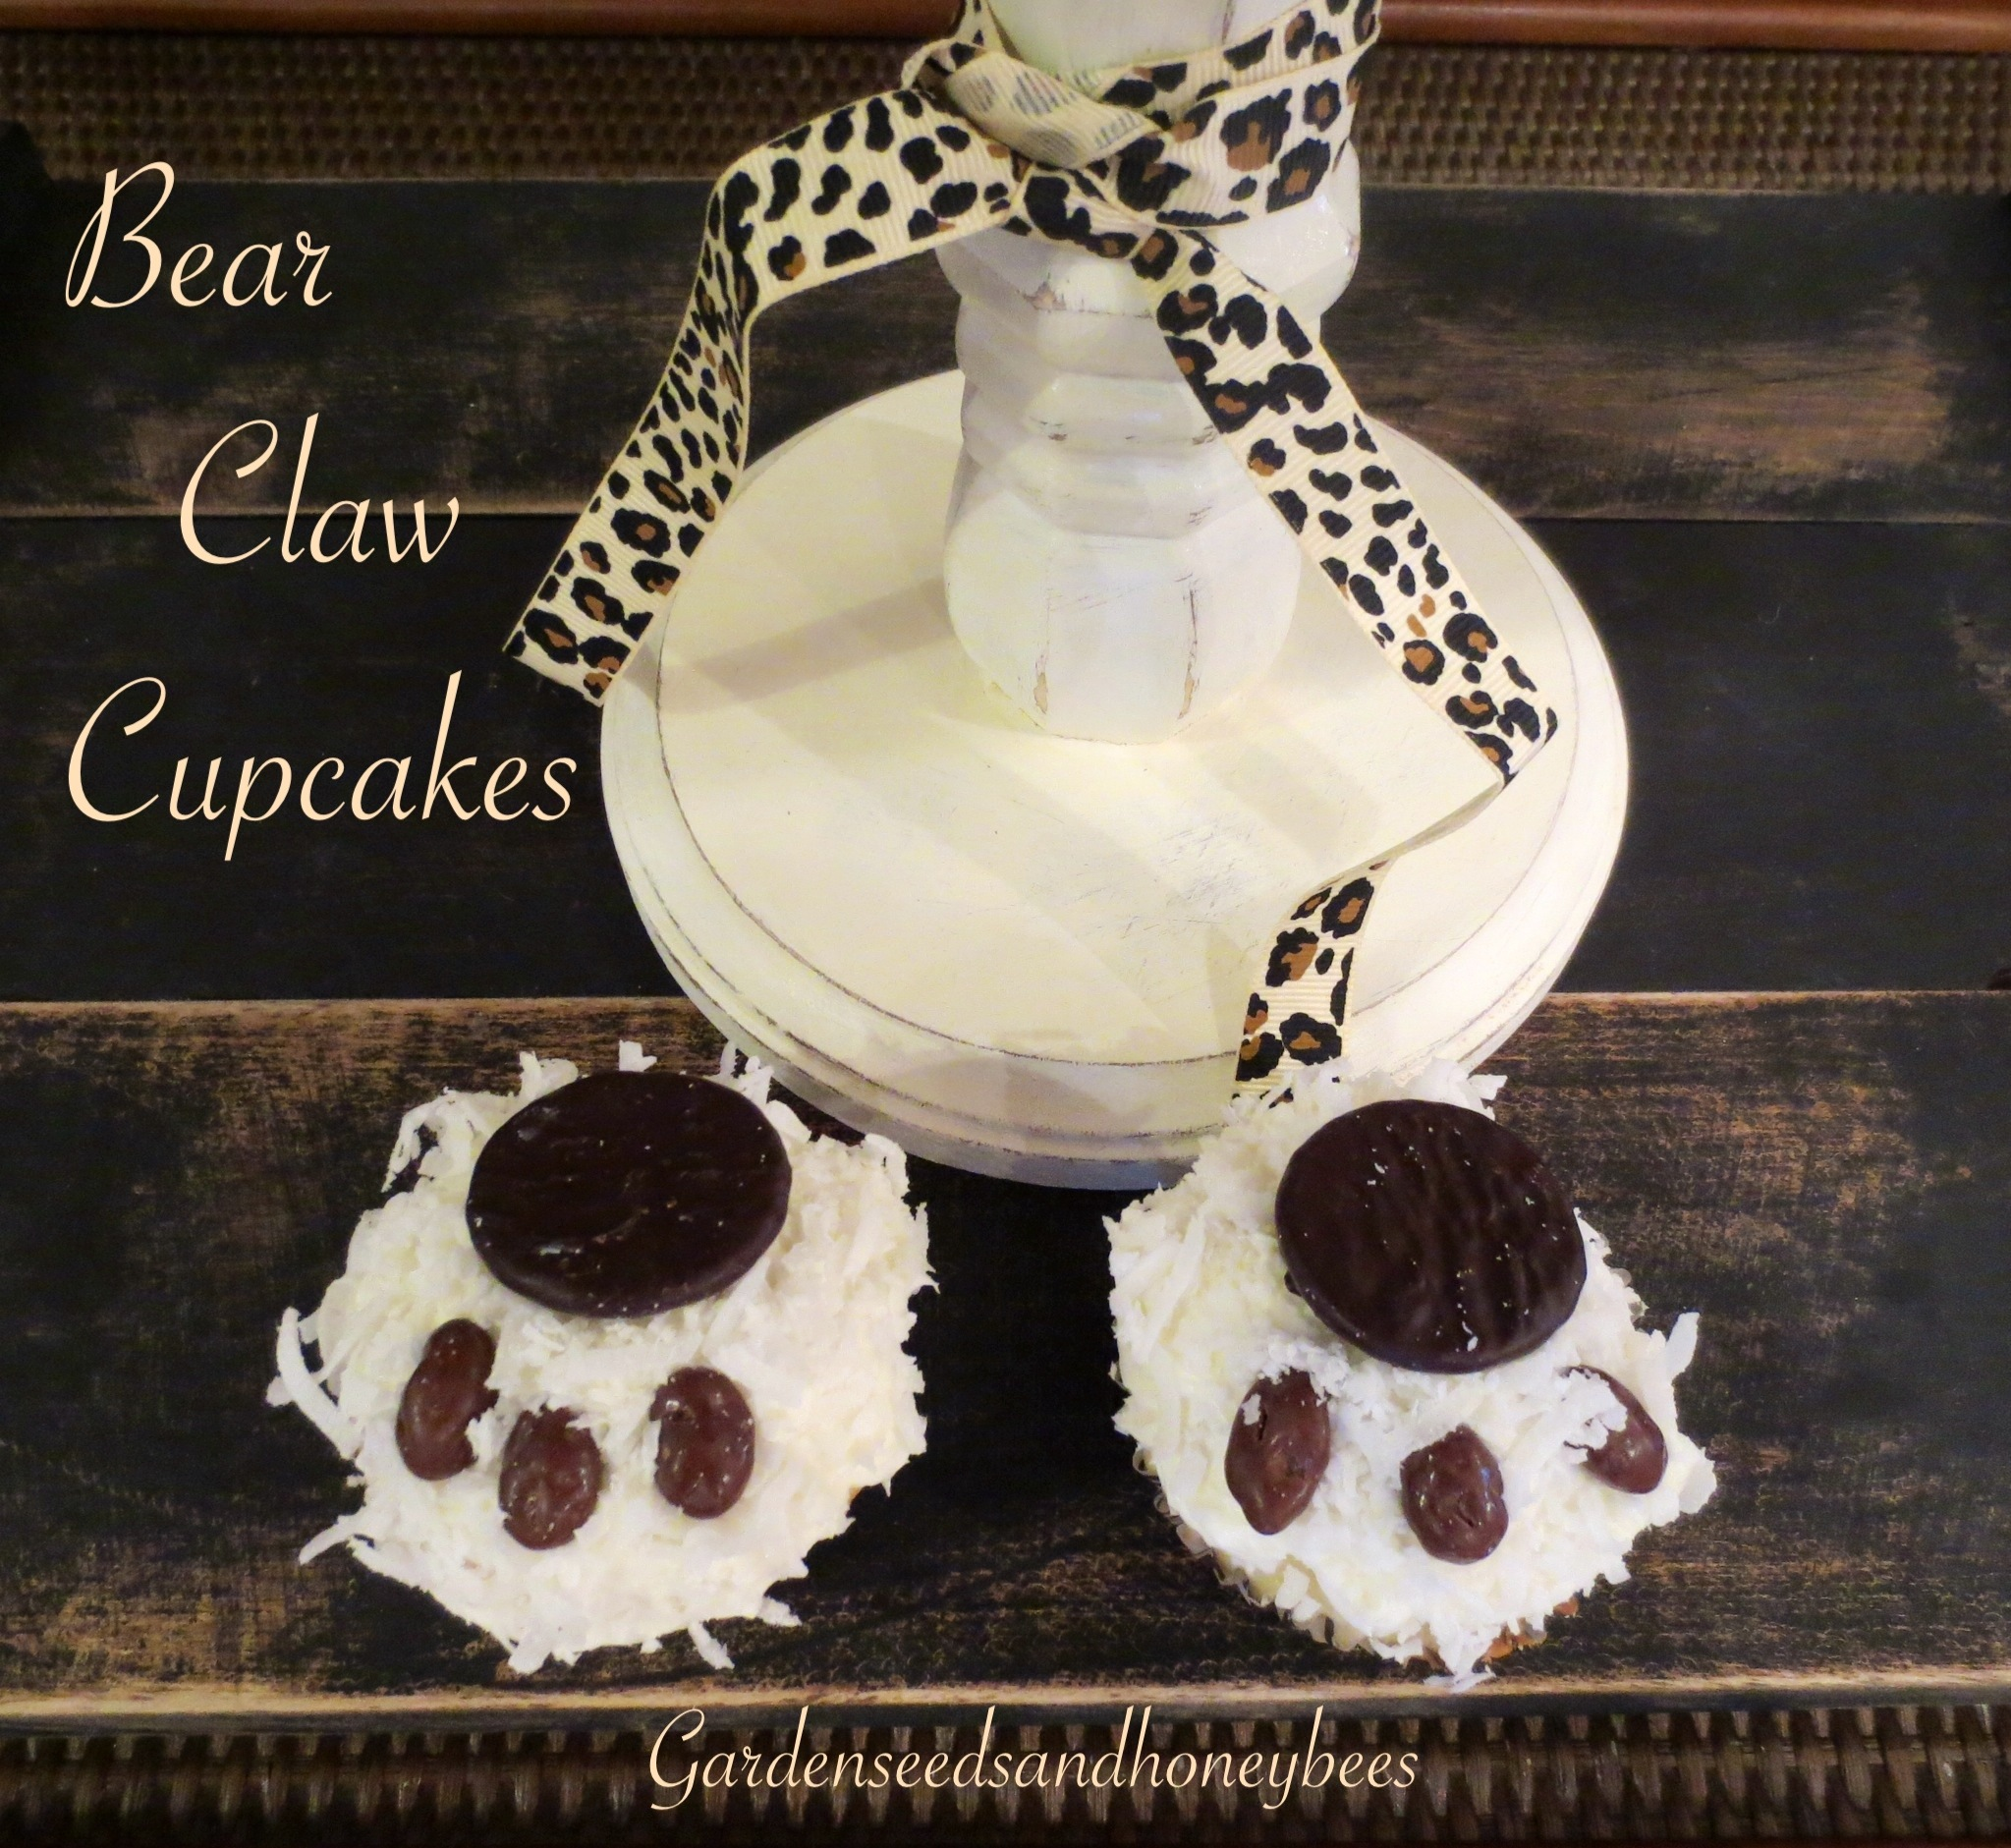 Bear Claw Cupcakes Garden Seeds And Honey Bees